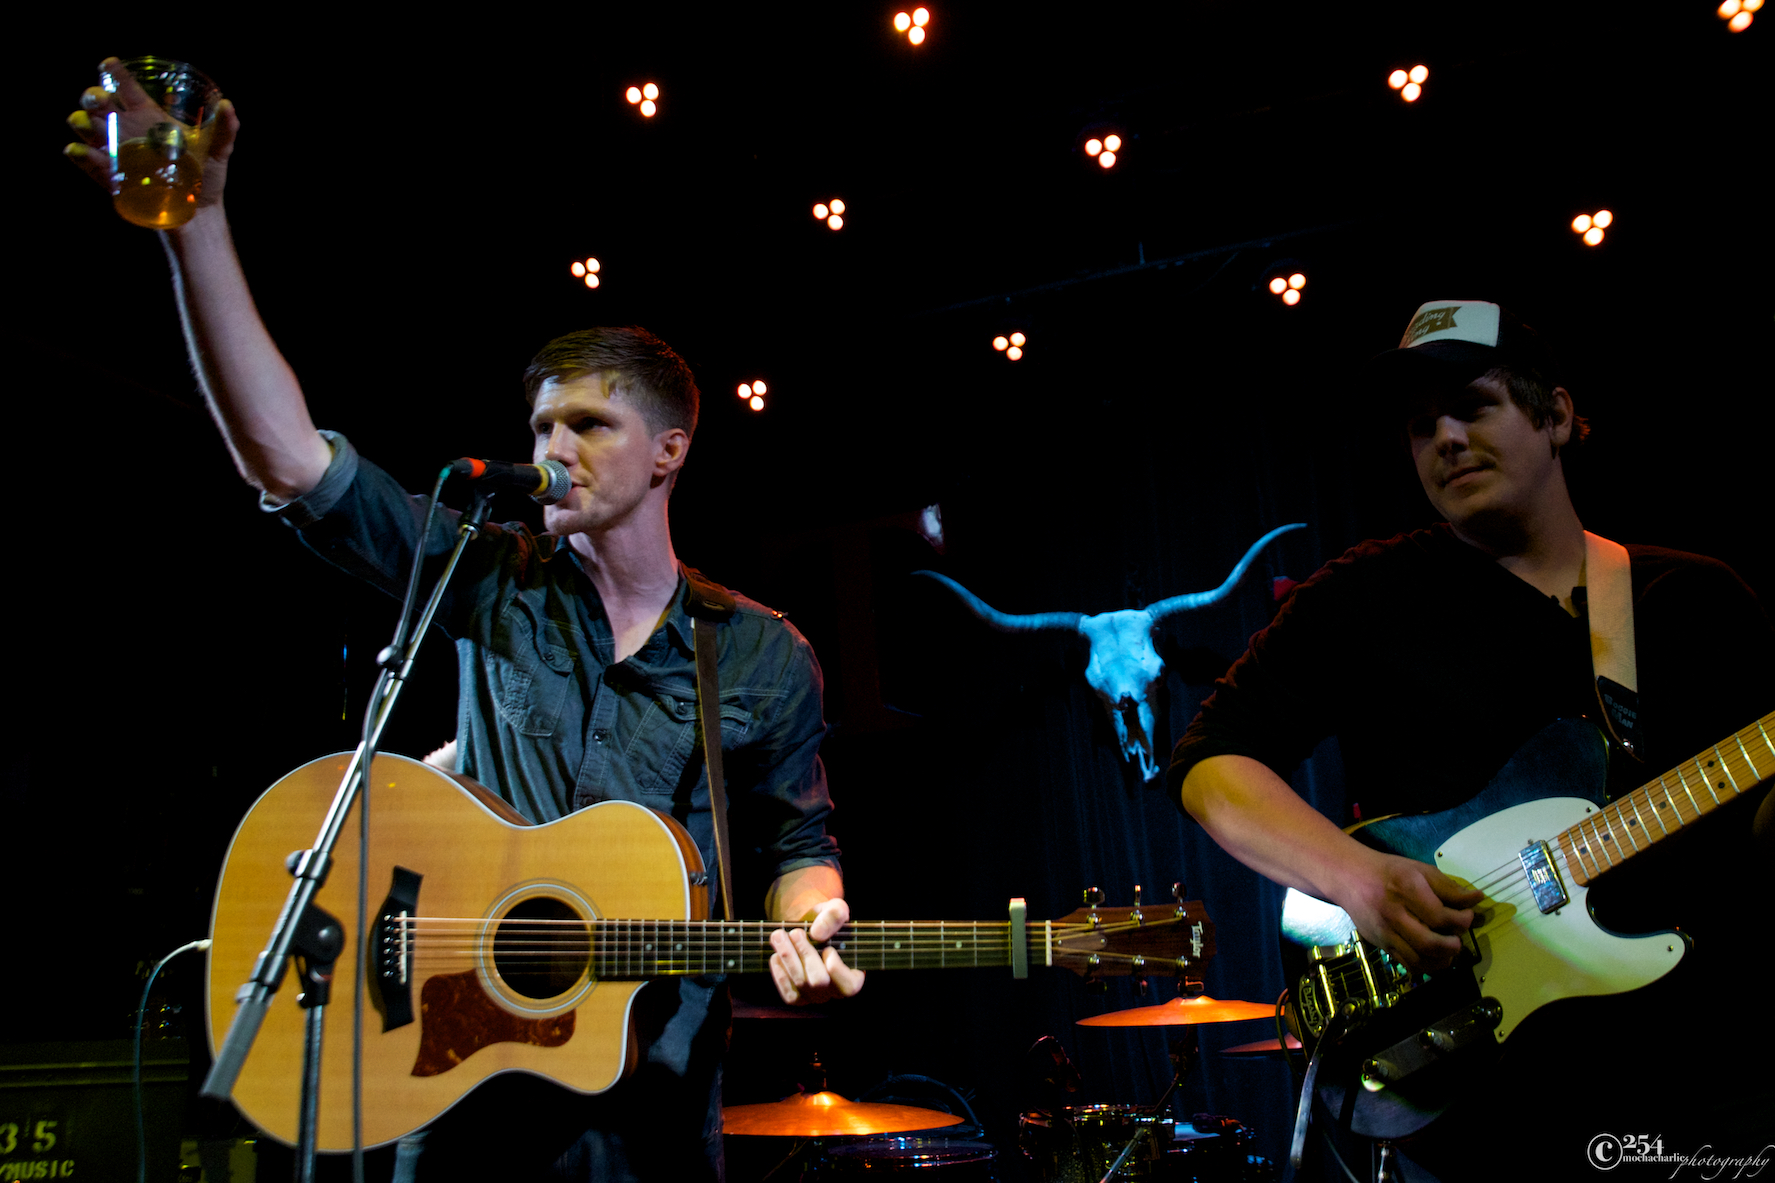 Tommy Simmons & Skyler Mehal at The Tractor Tavern (Photo by Mocha Charlie)